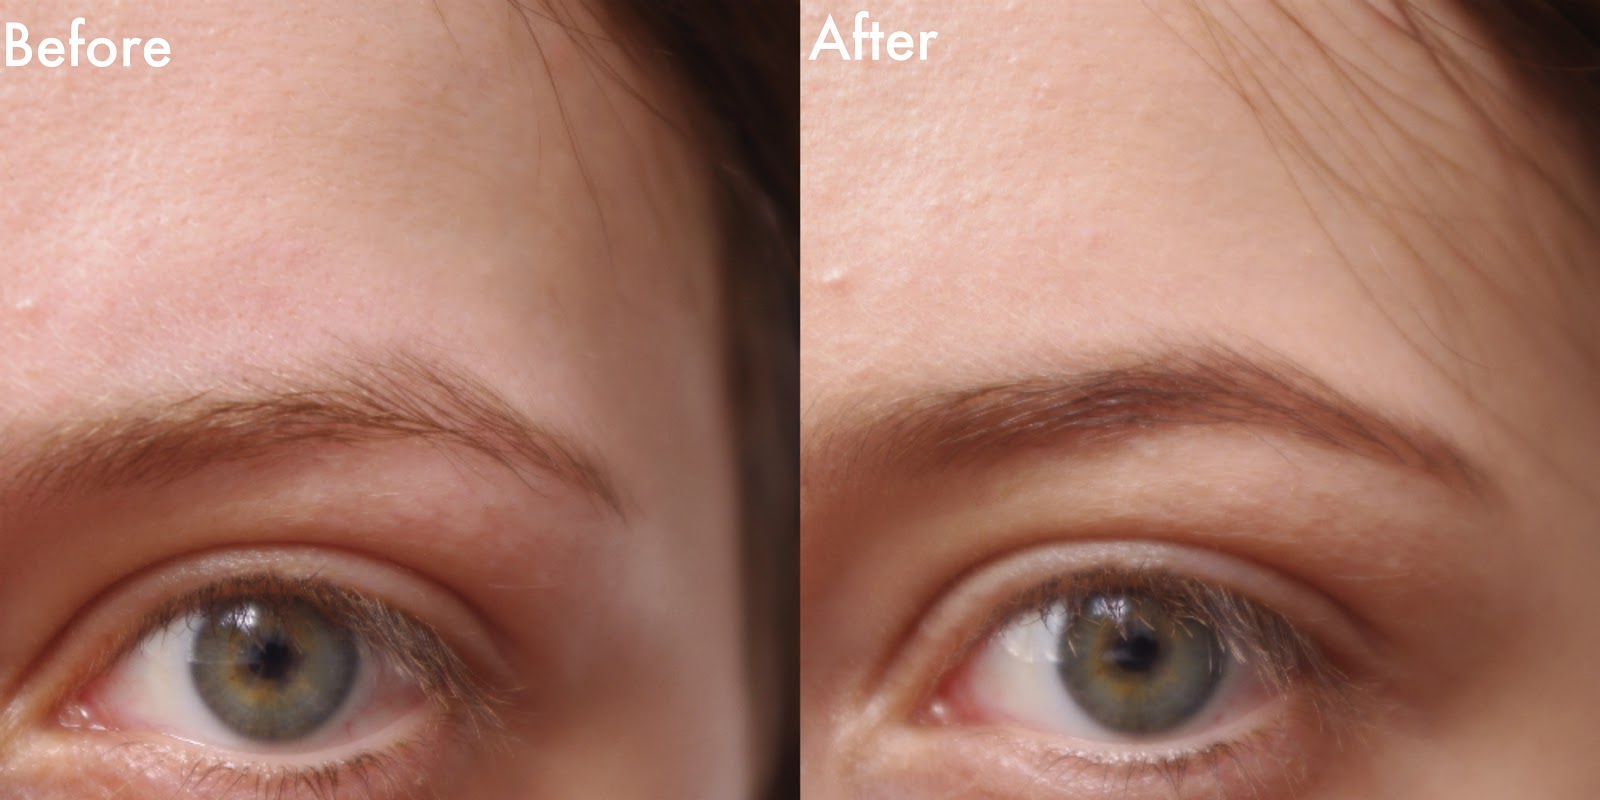 Before And After Brazilian Wax Photos Hairstylegalleries Com